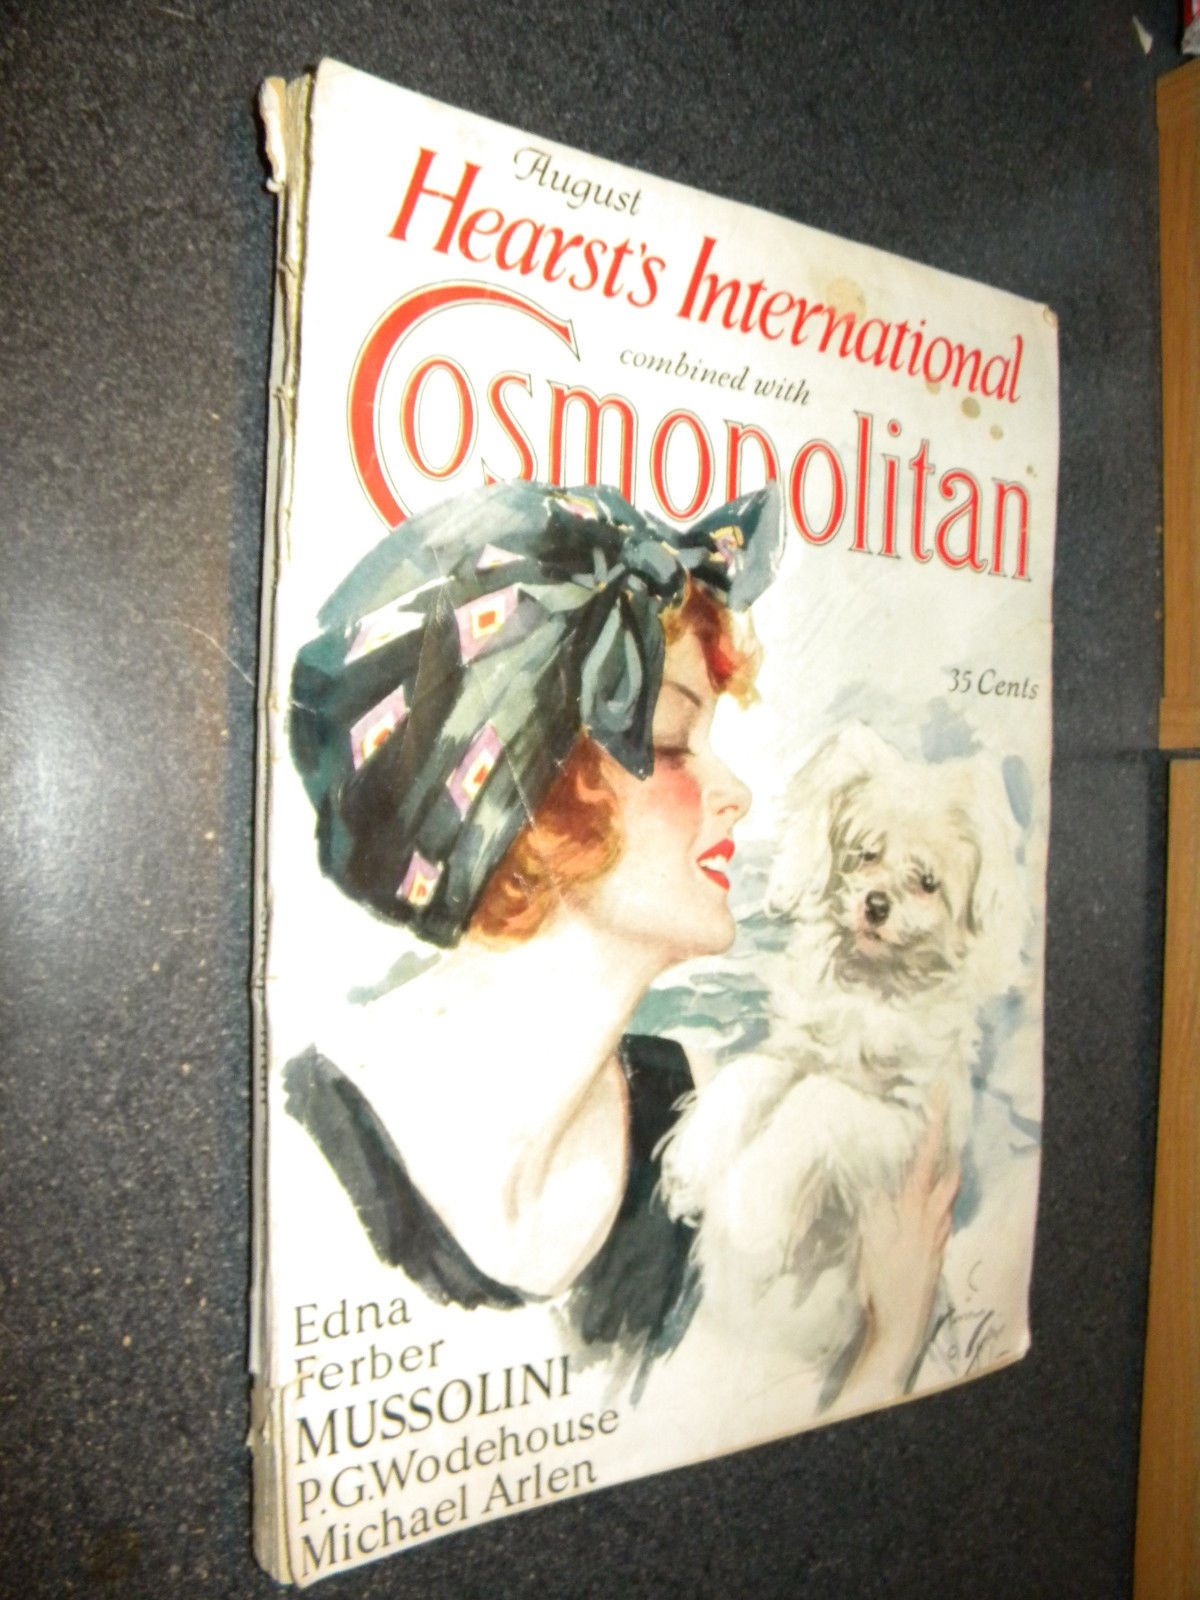 Pin On 1925 1929 Vintage Cosmopolitan Covers Ads